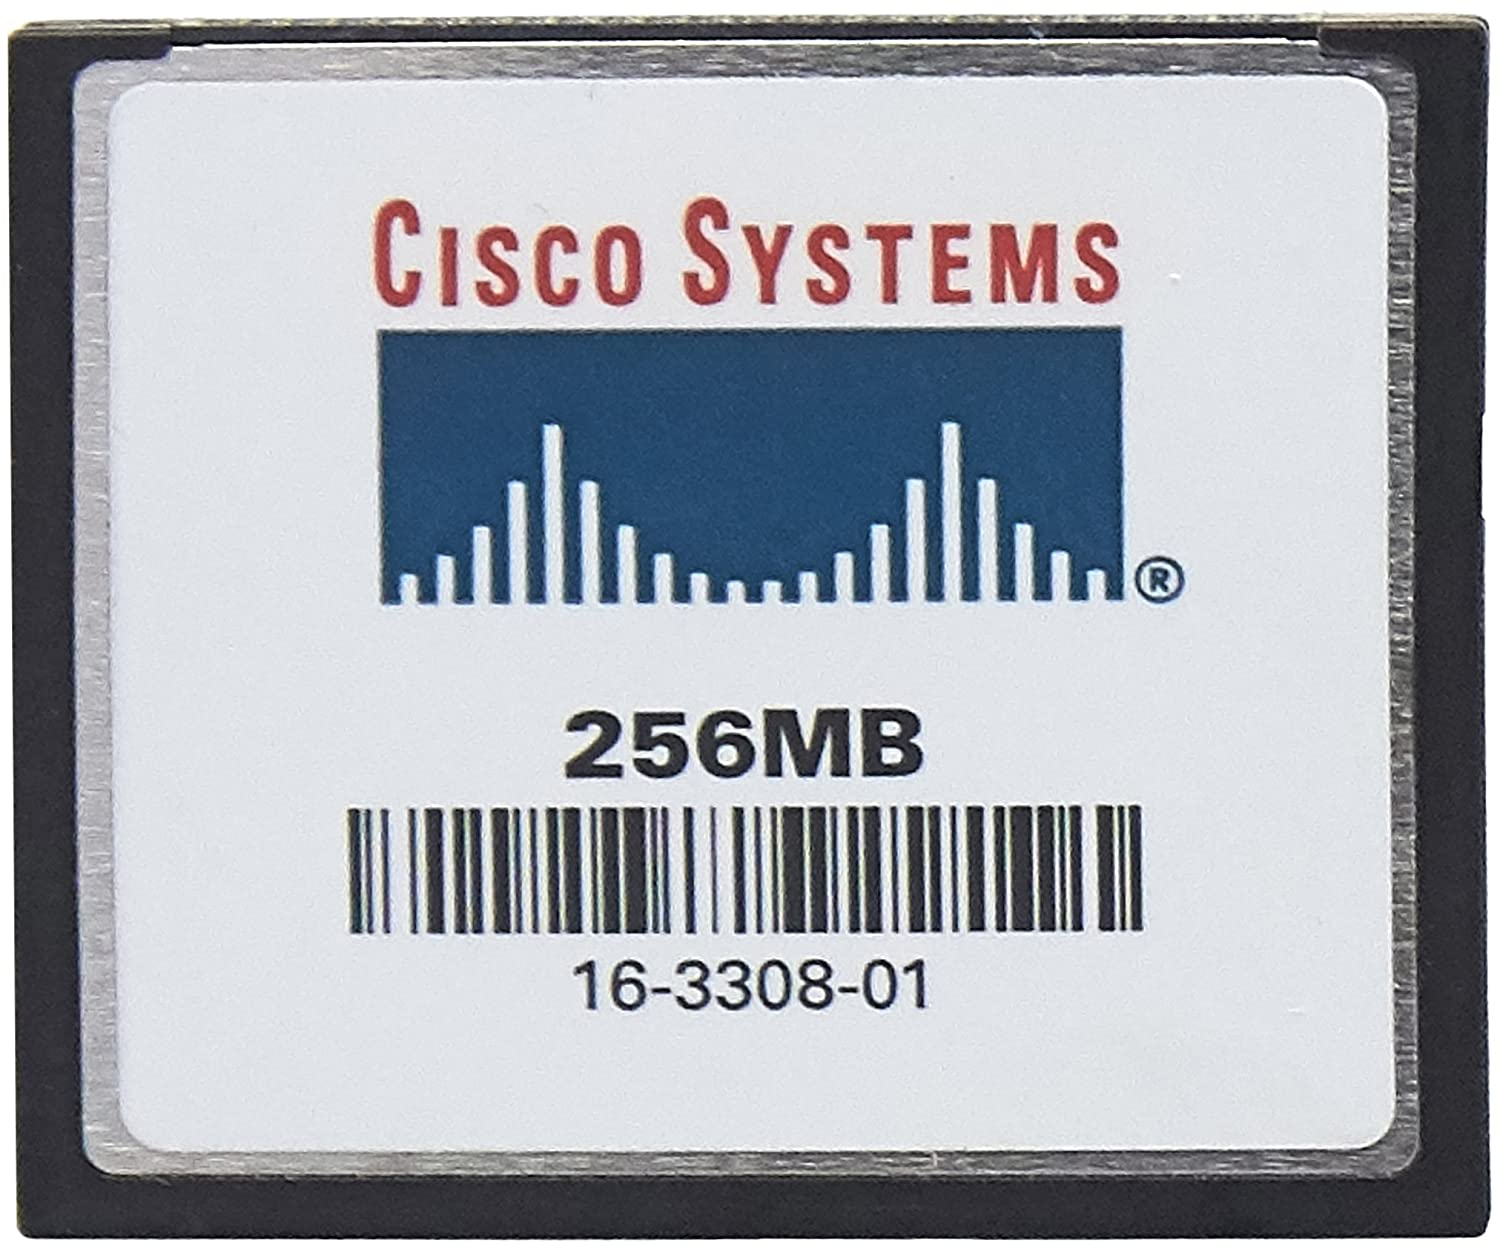 Cisco flash memory card - 256 MB - CompactFlash Card (MEM-C6K-CPTFL256M=) CISCO SYSTEMS - ENTERPRISE Switches & Hubs